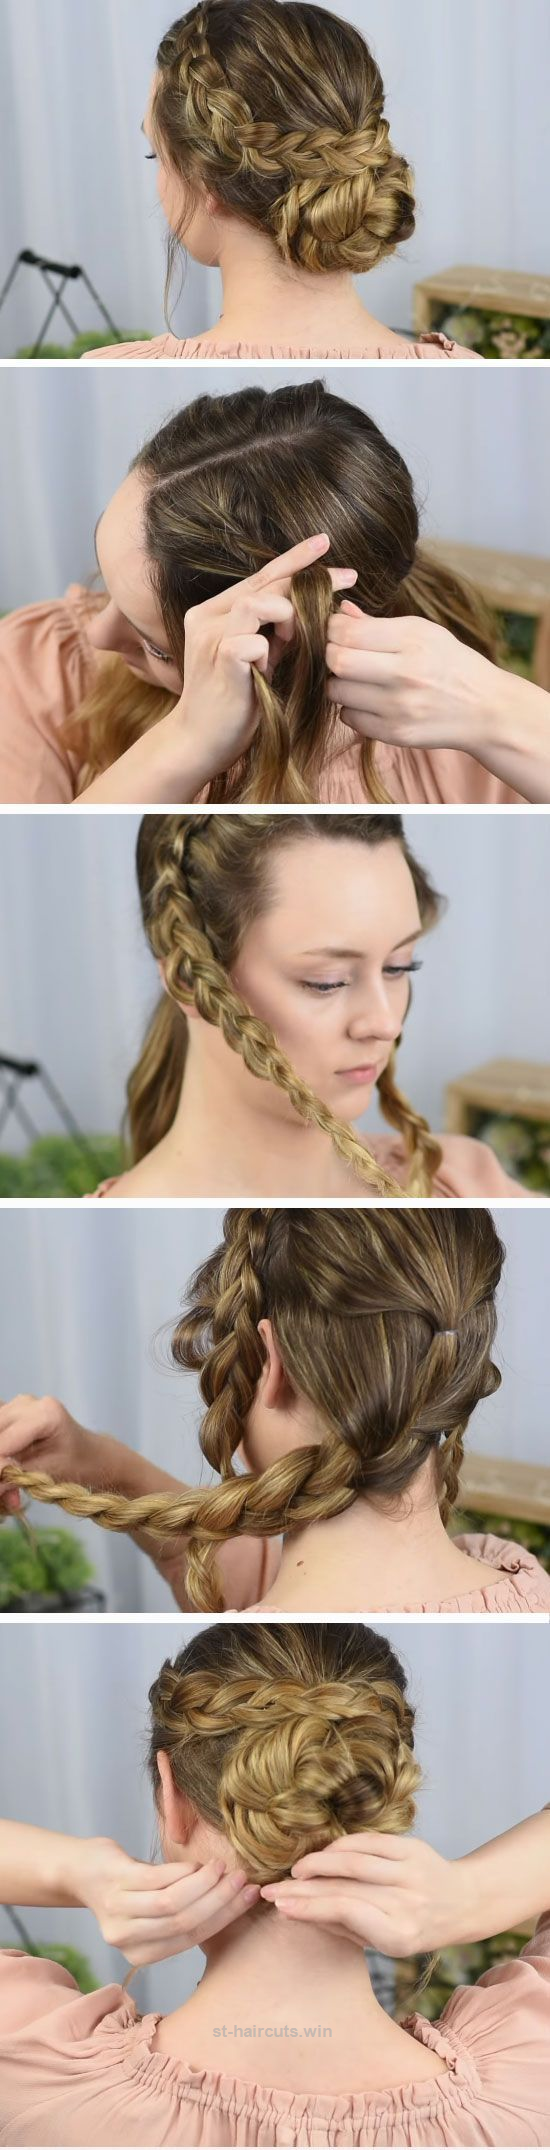 Dutch braided updo coiffures pinterest easy homecoming